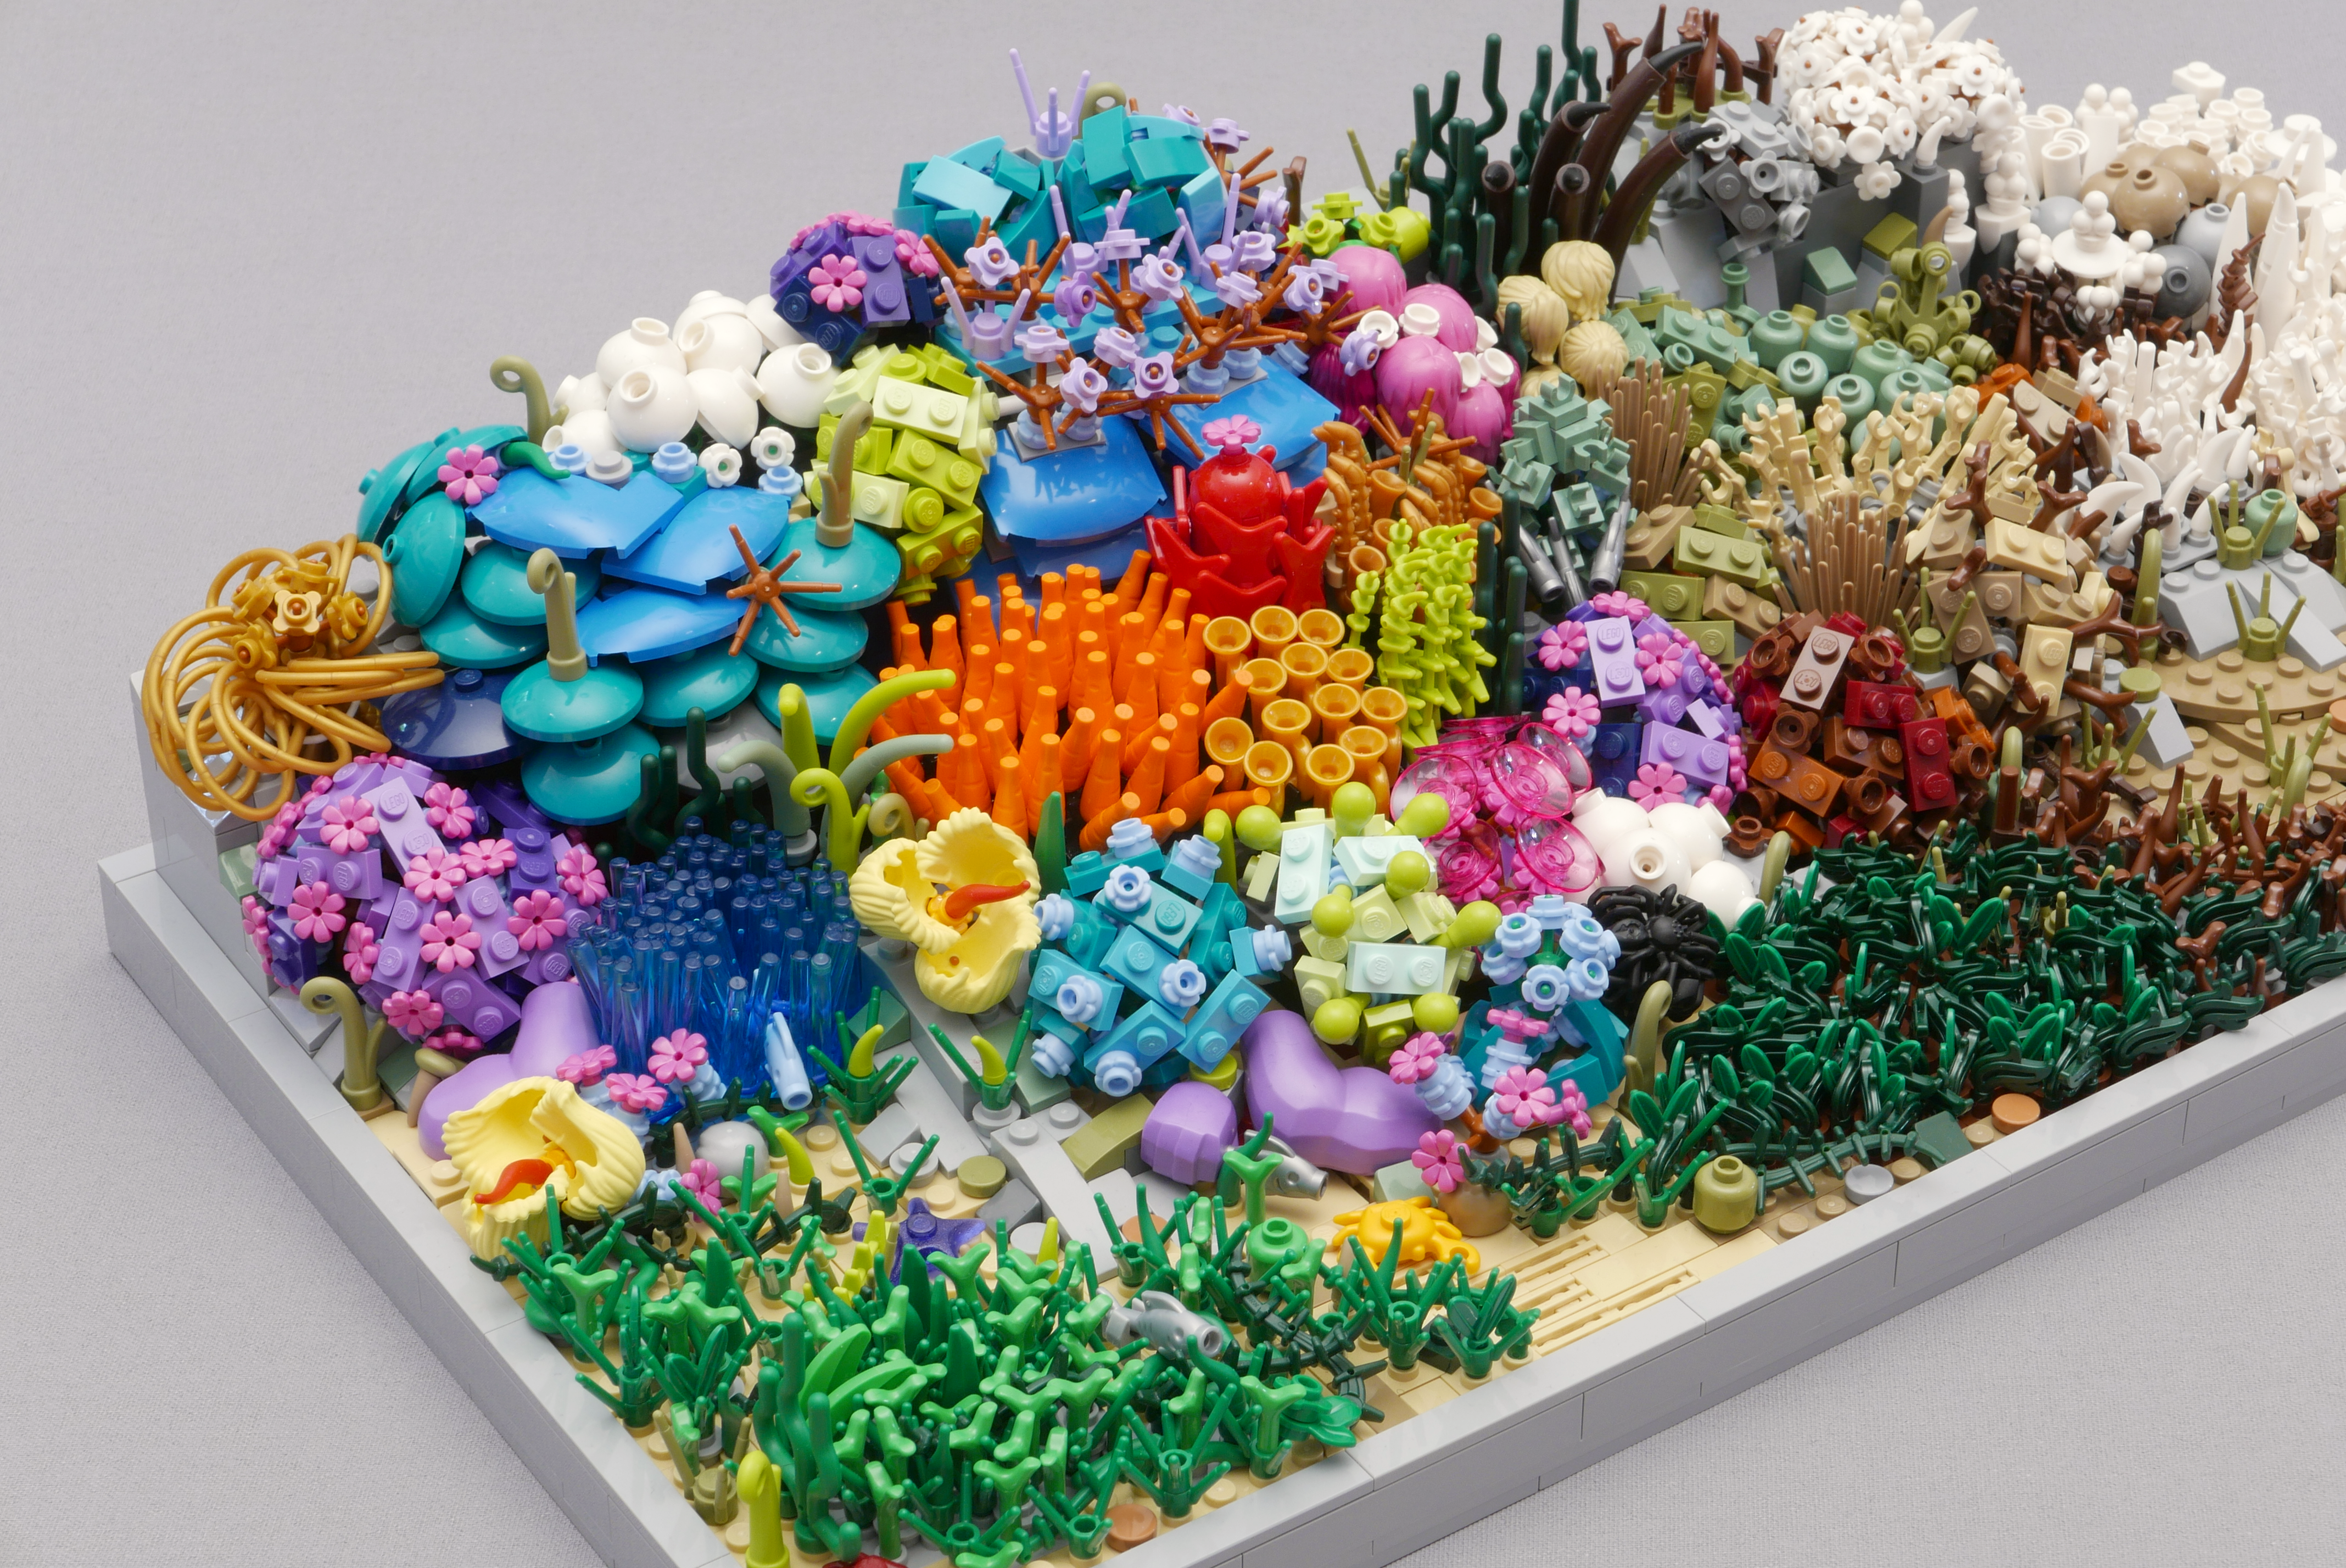 Lego coral bleaching